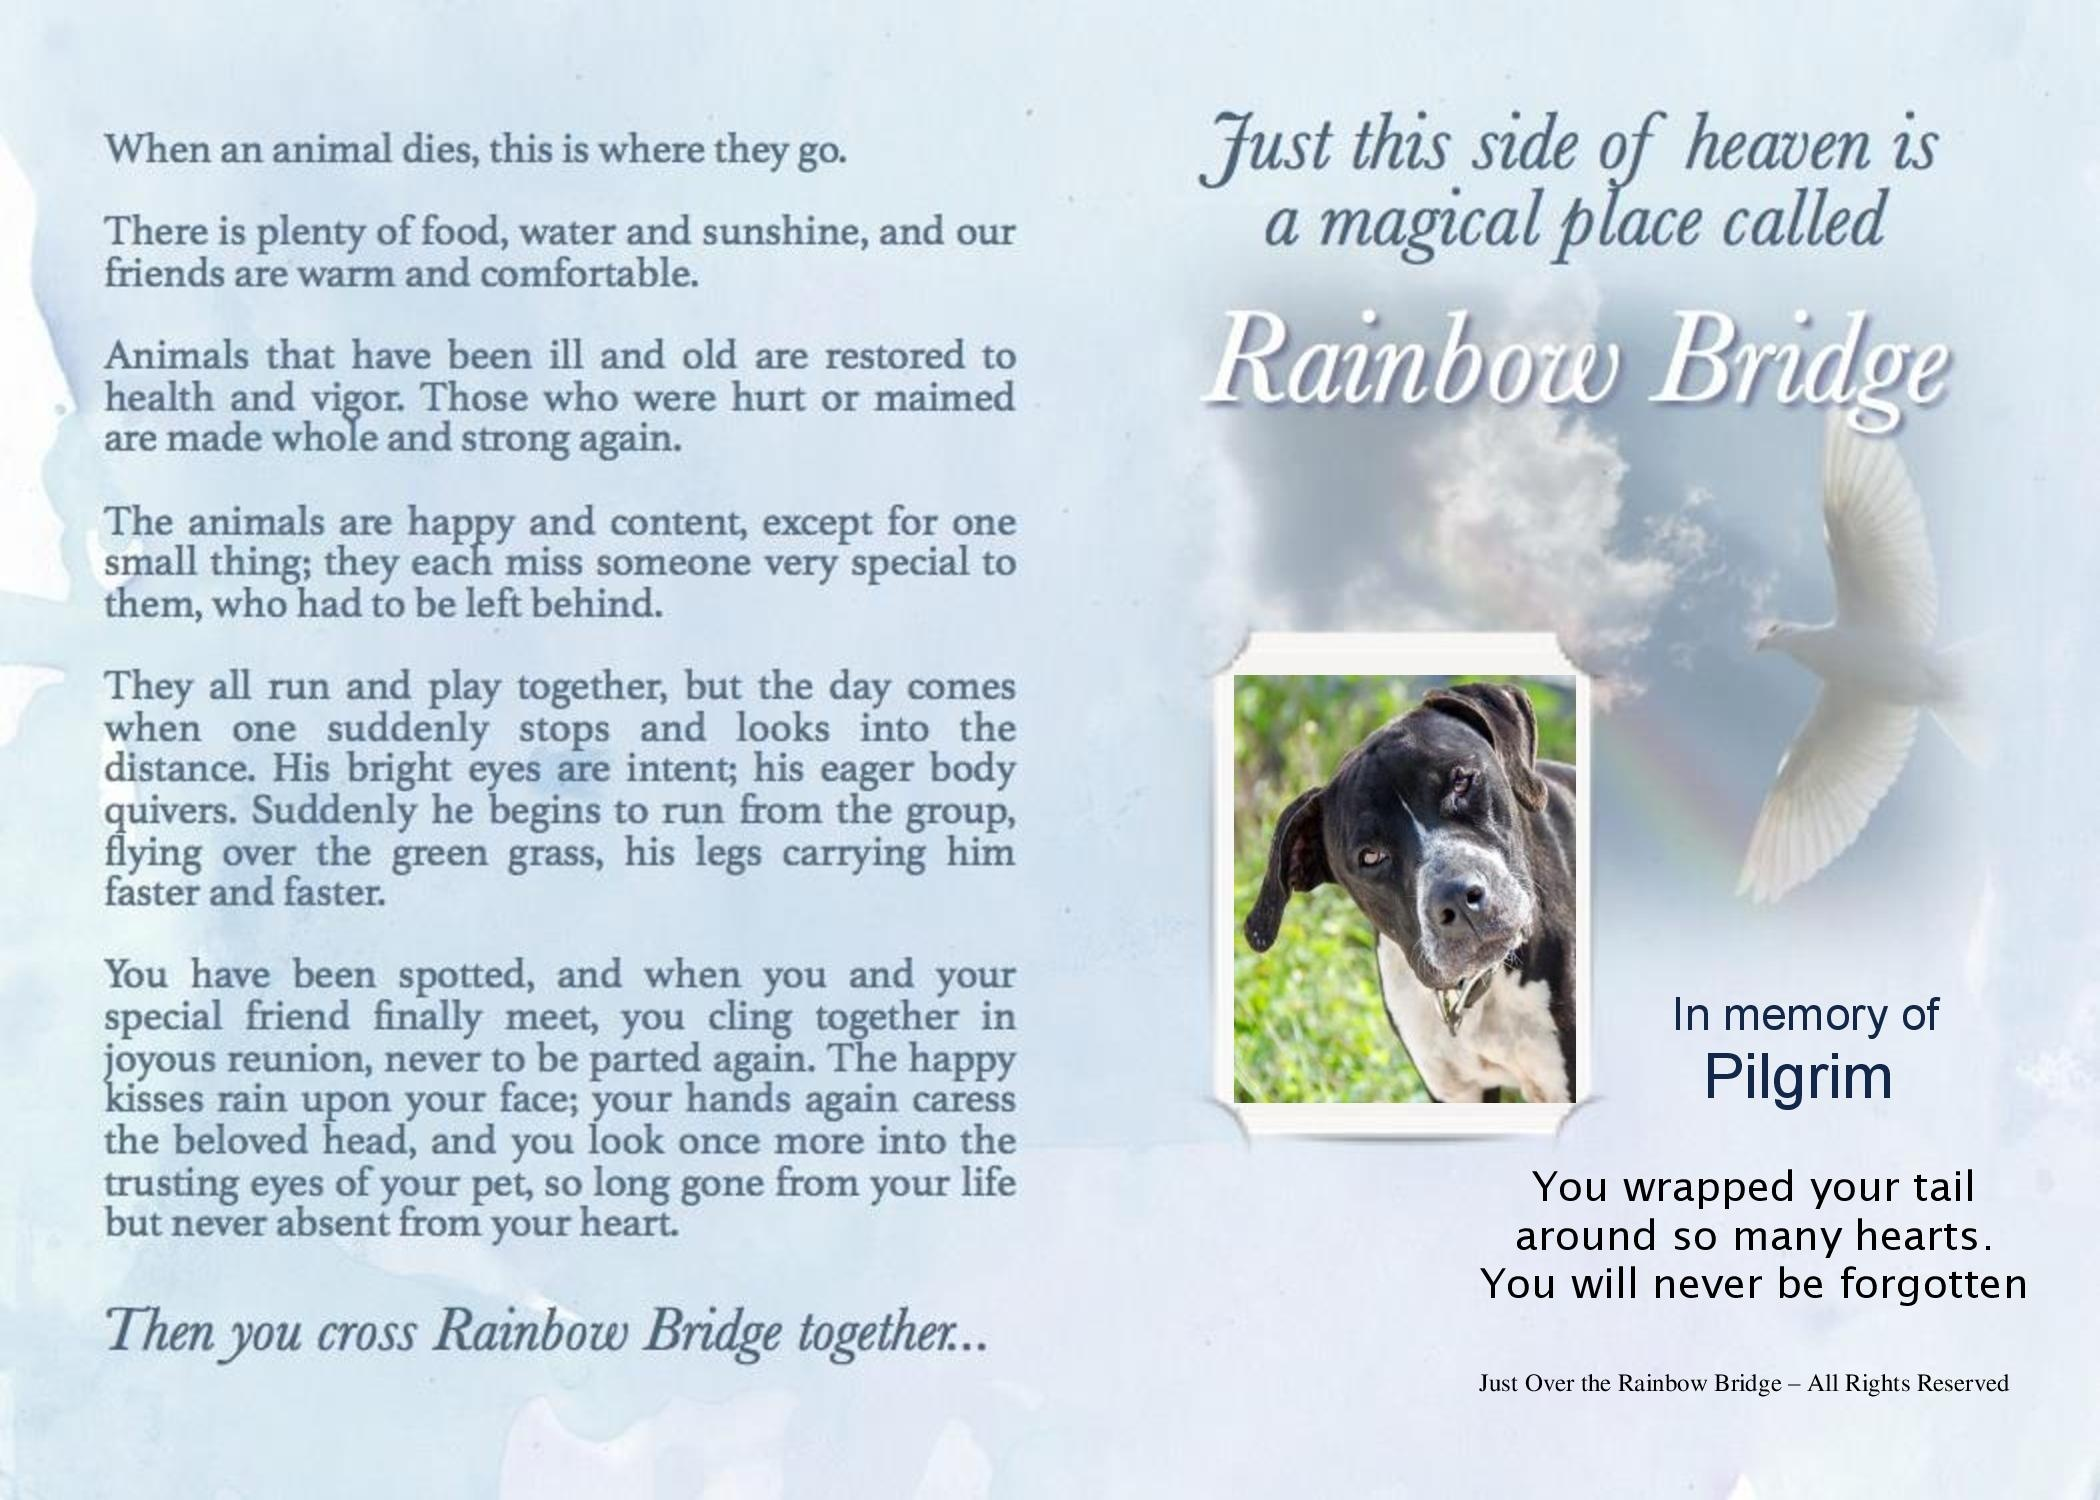 Just Over The Rainbow Bridge1-3625In memory of Pilgrim.jpg453